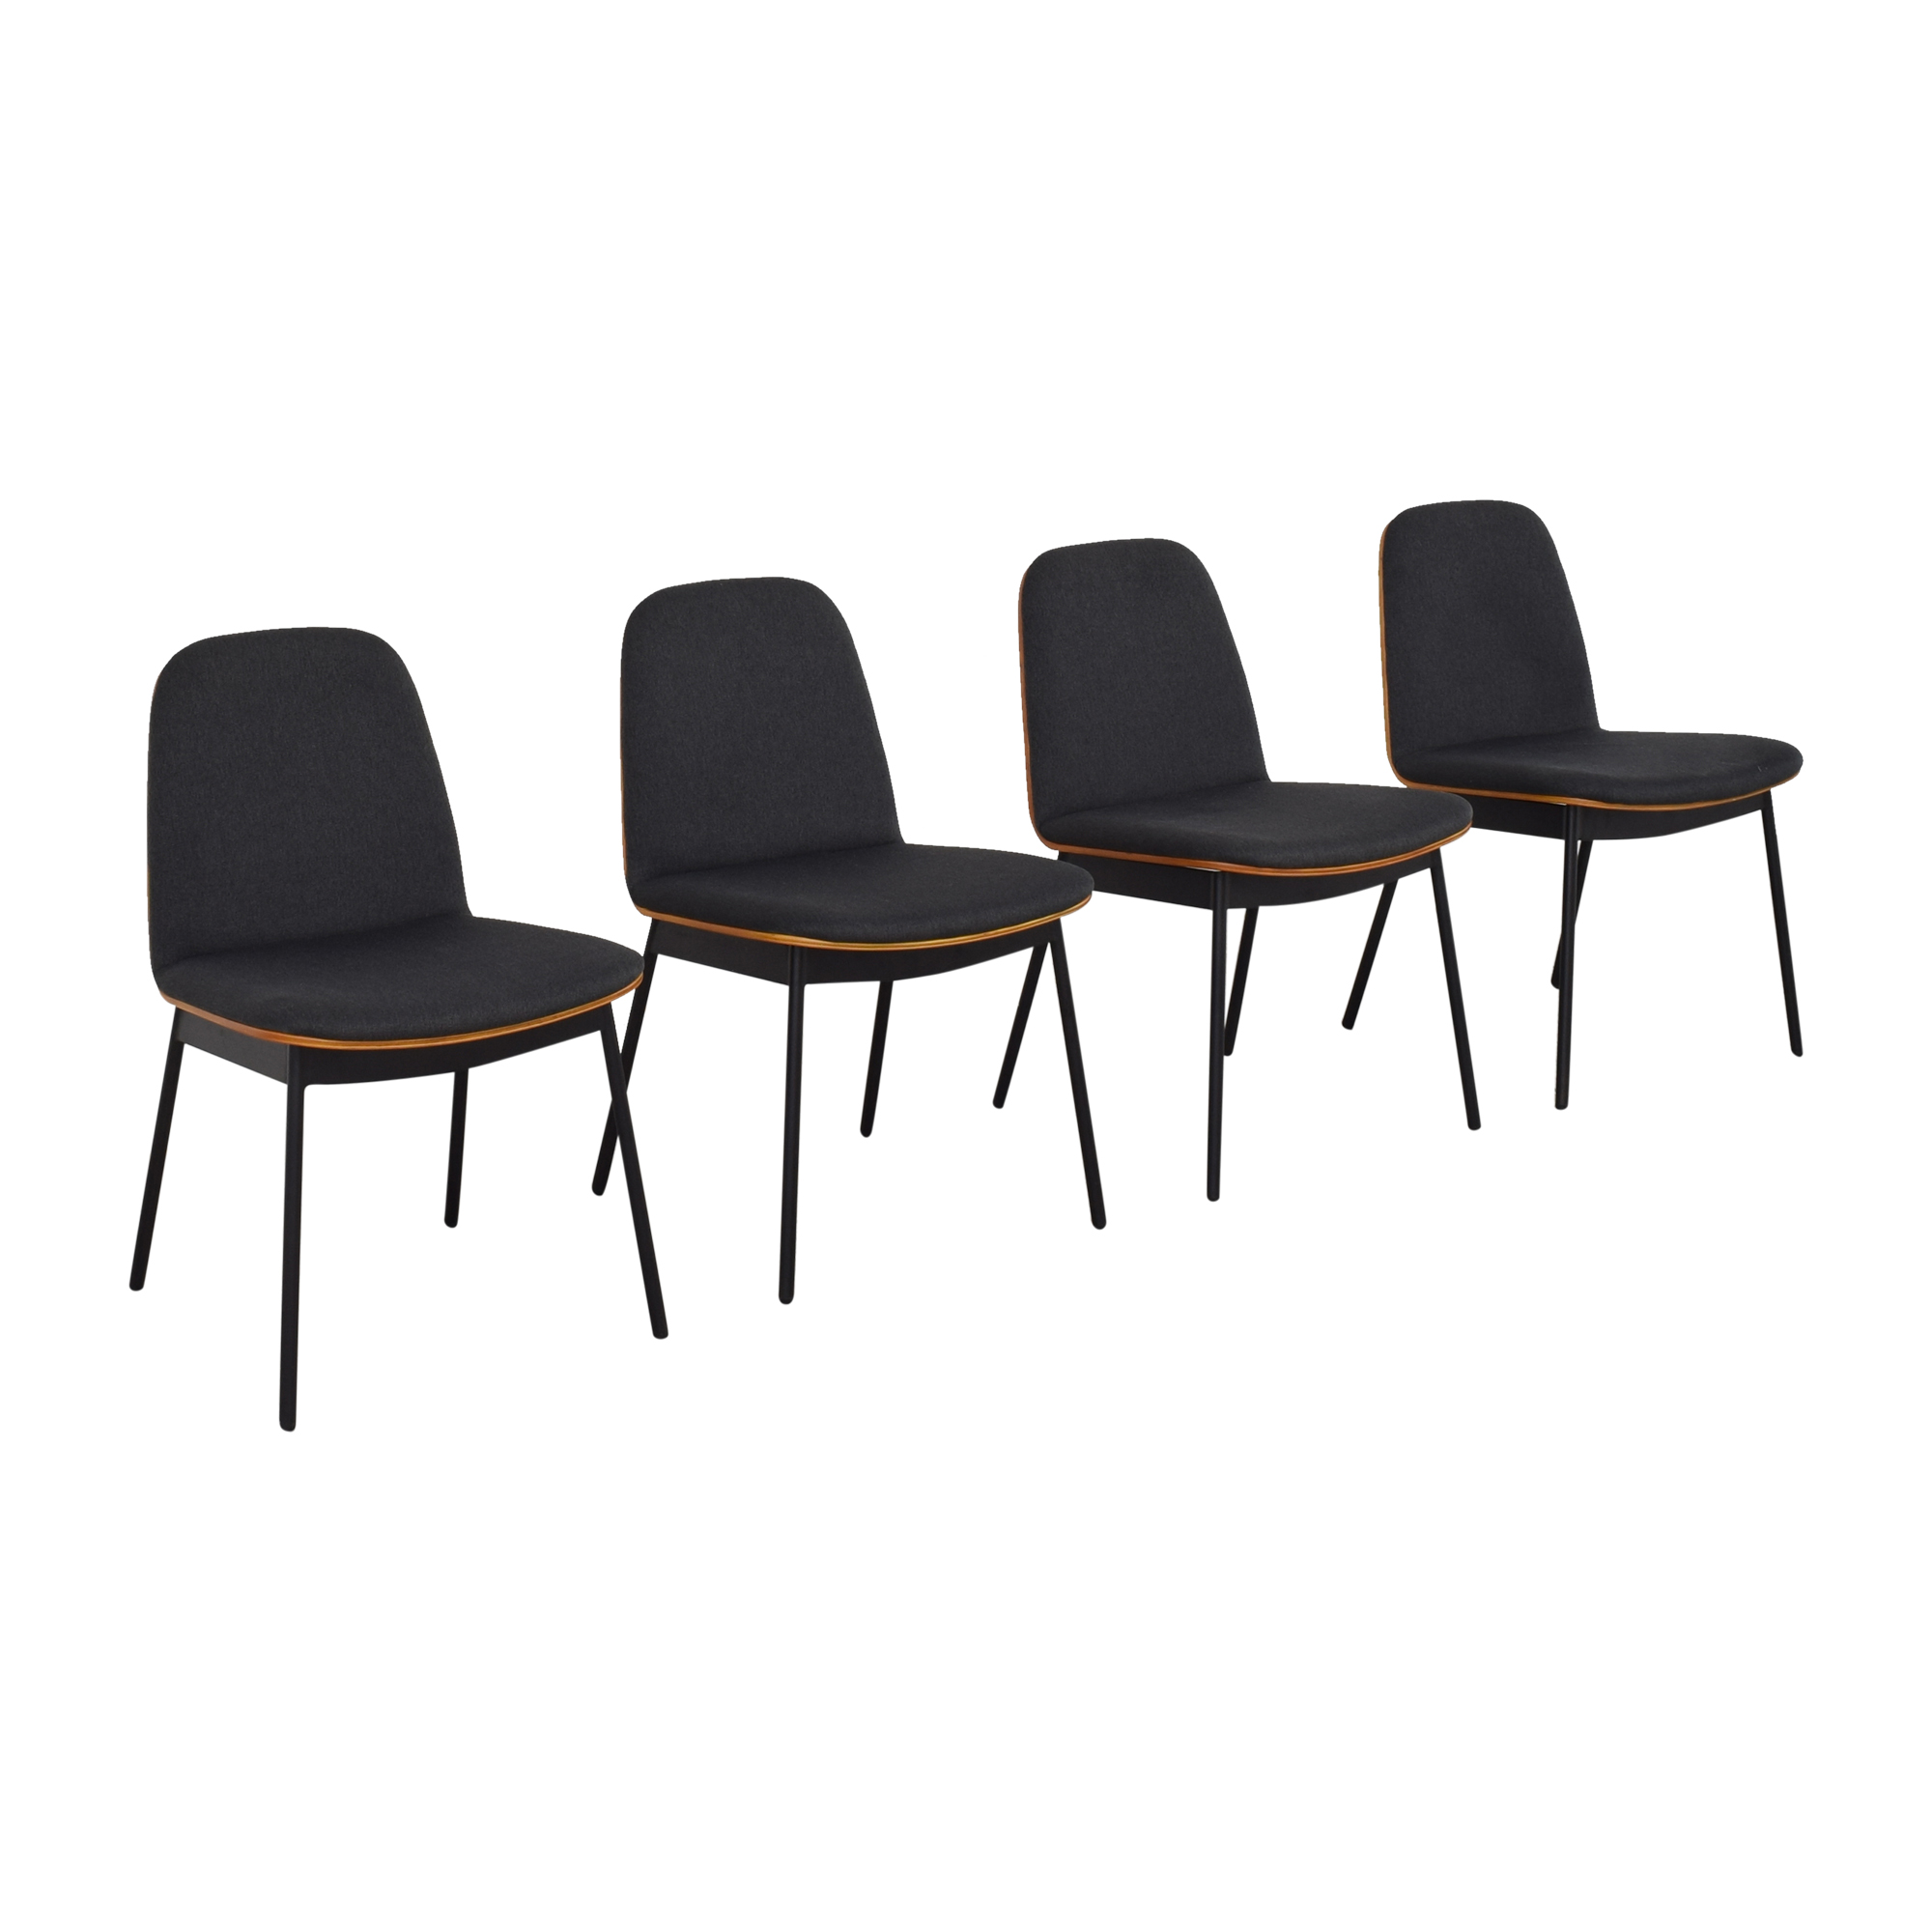 buy Industry West Duet Chairs Industry West Chairs